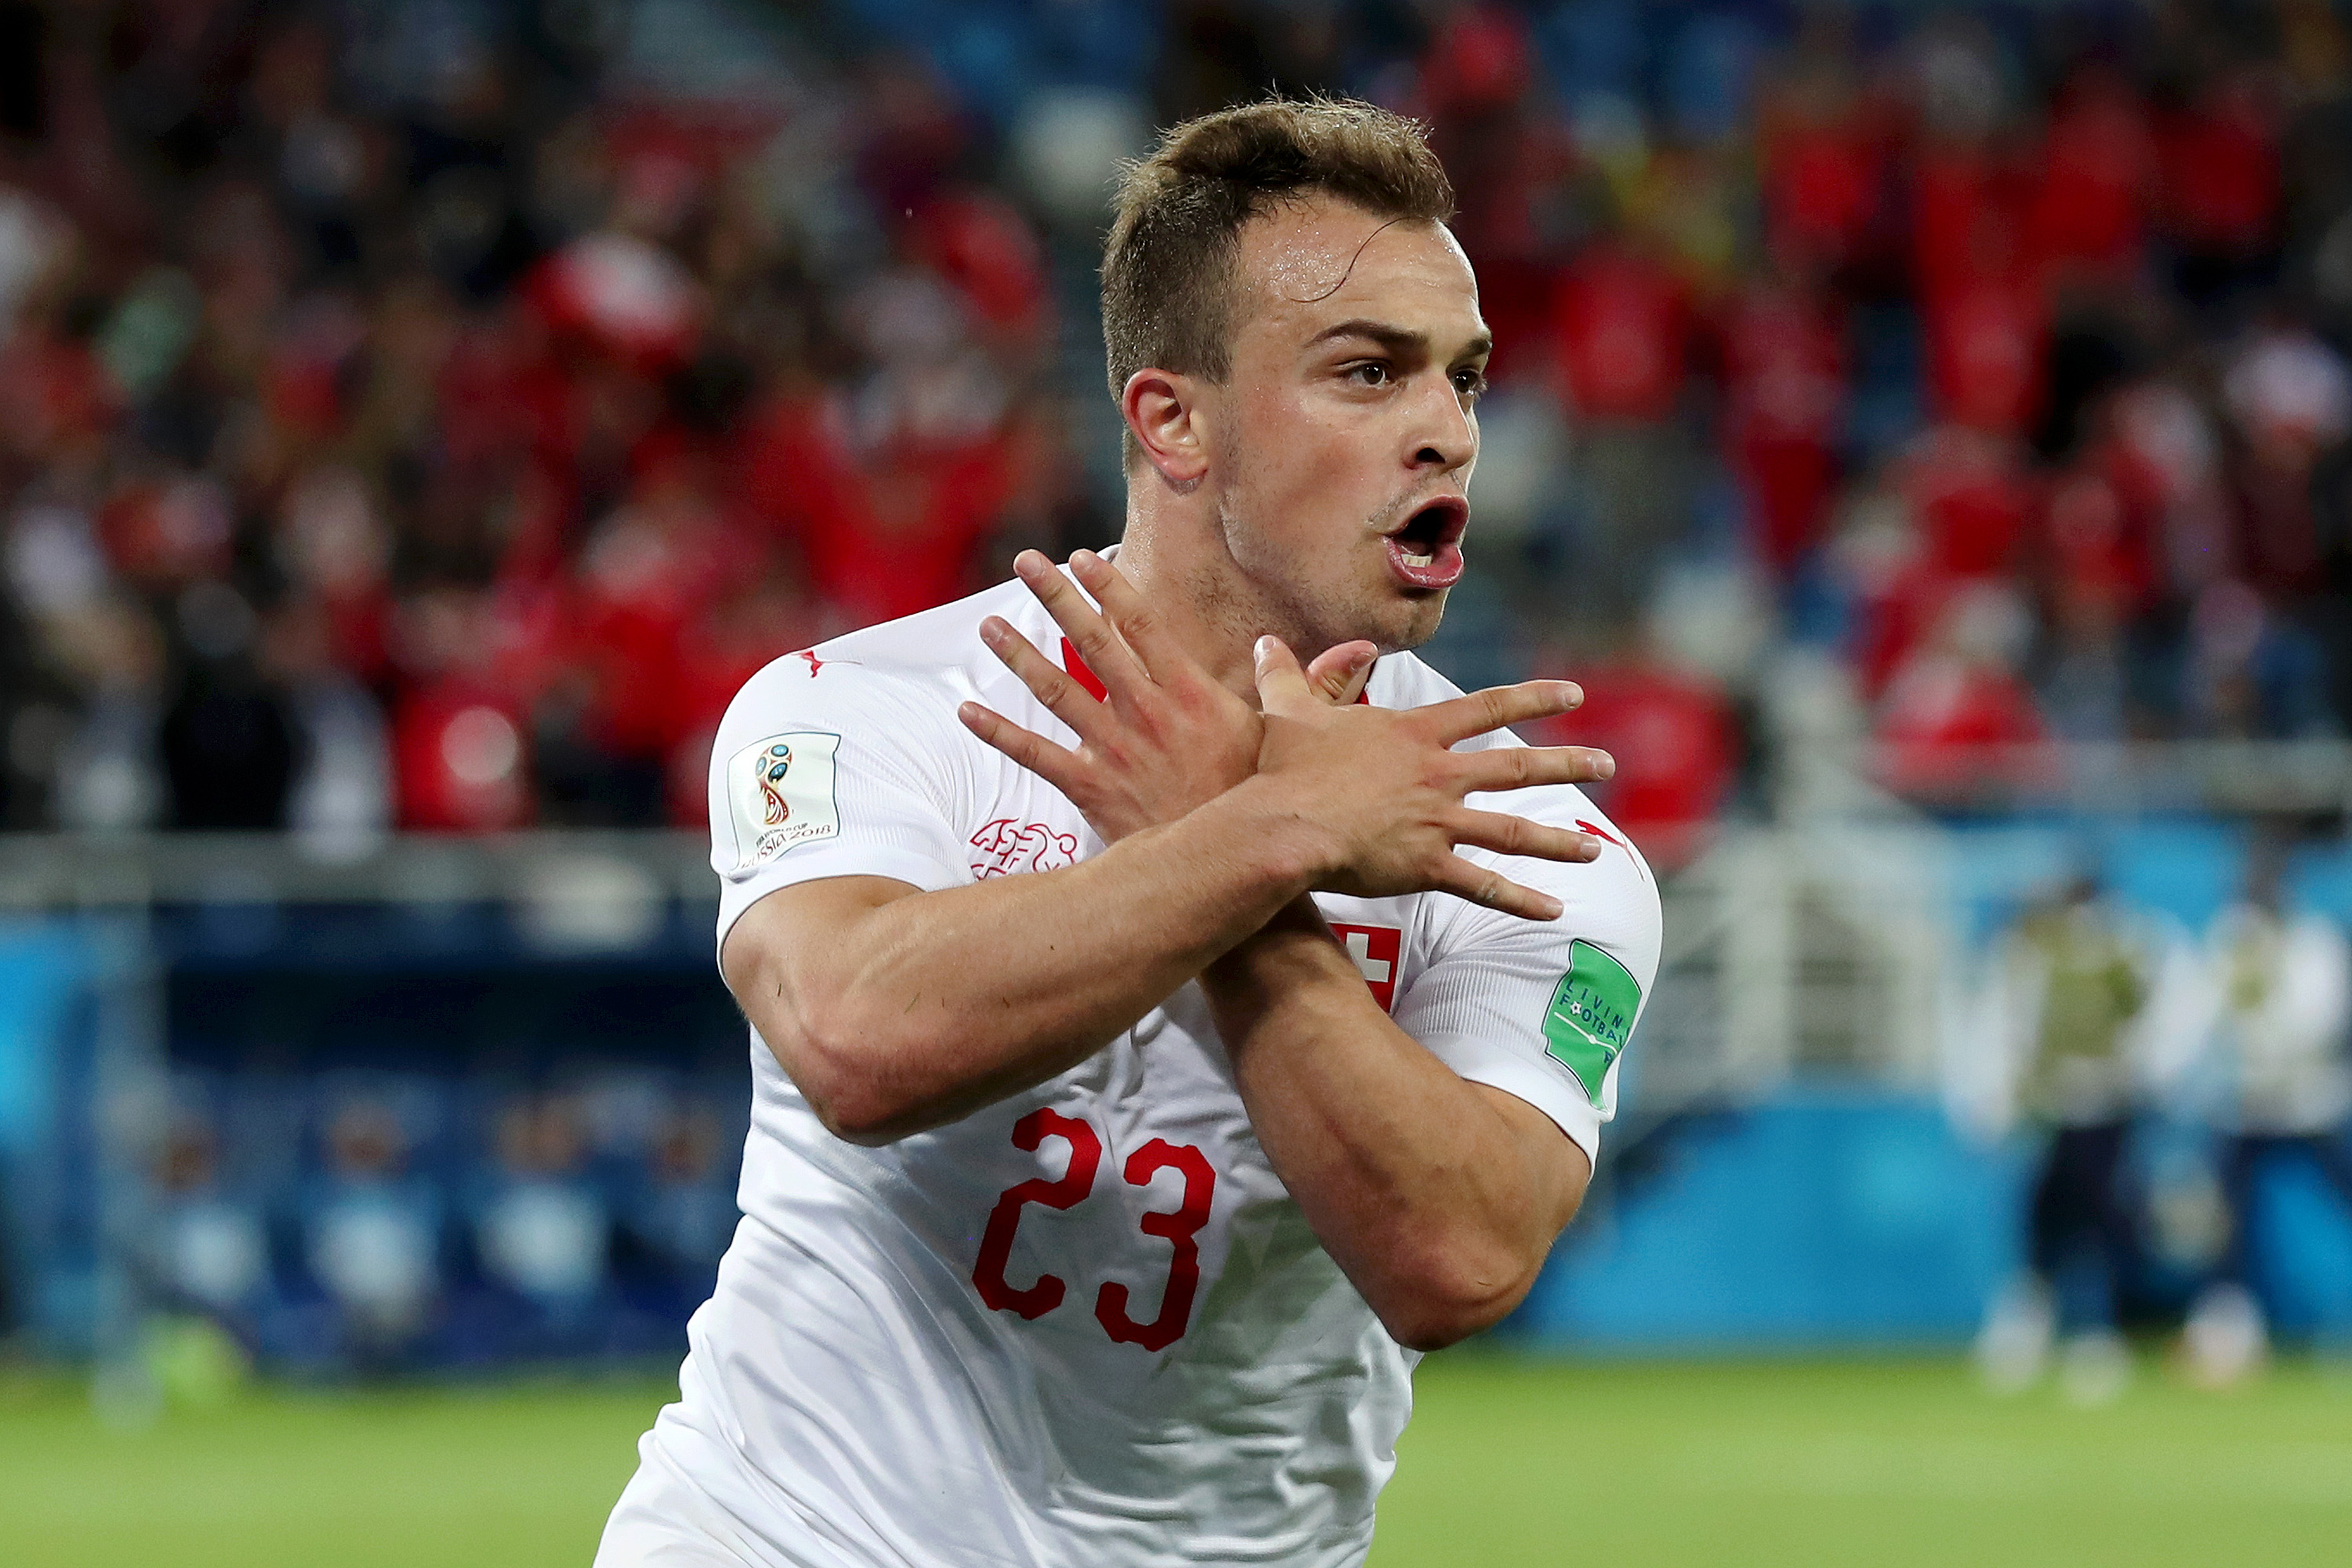 FIFA Opens Investigations Into Swiss Players Shaqiri And Xhaka Over Hand Gestures